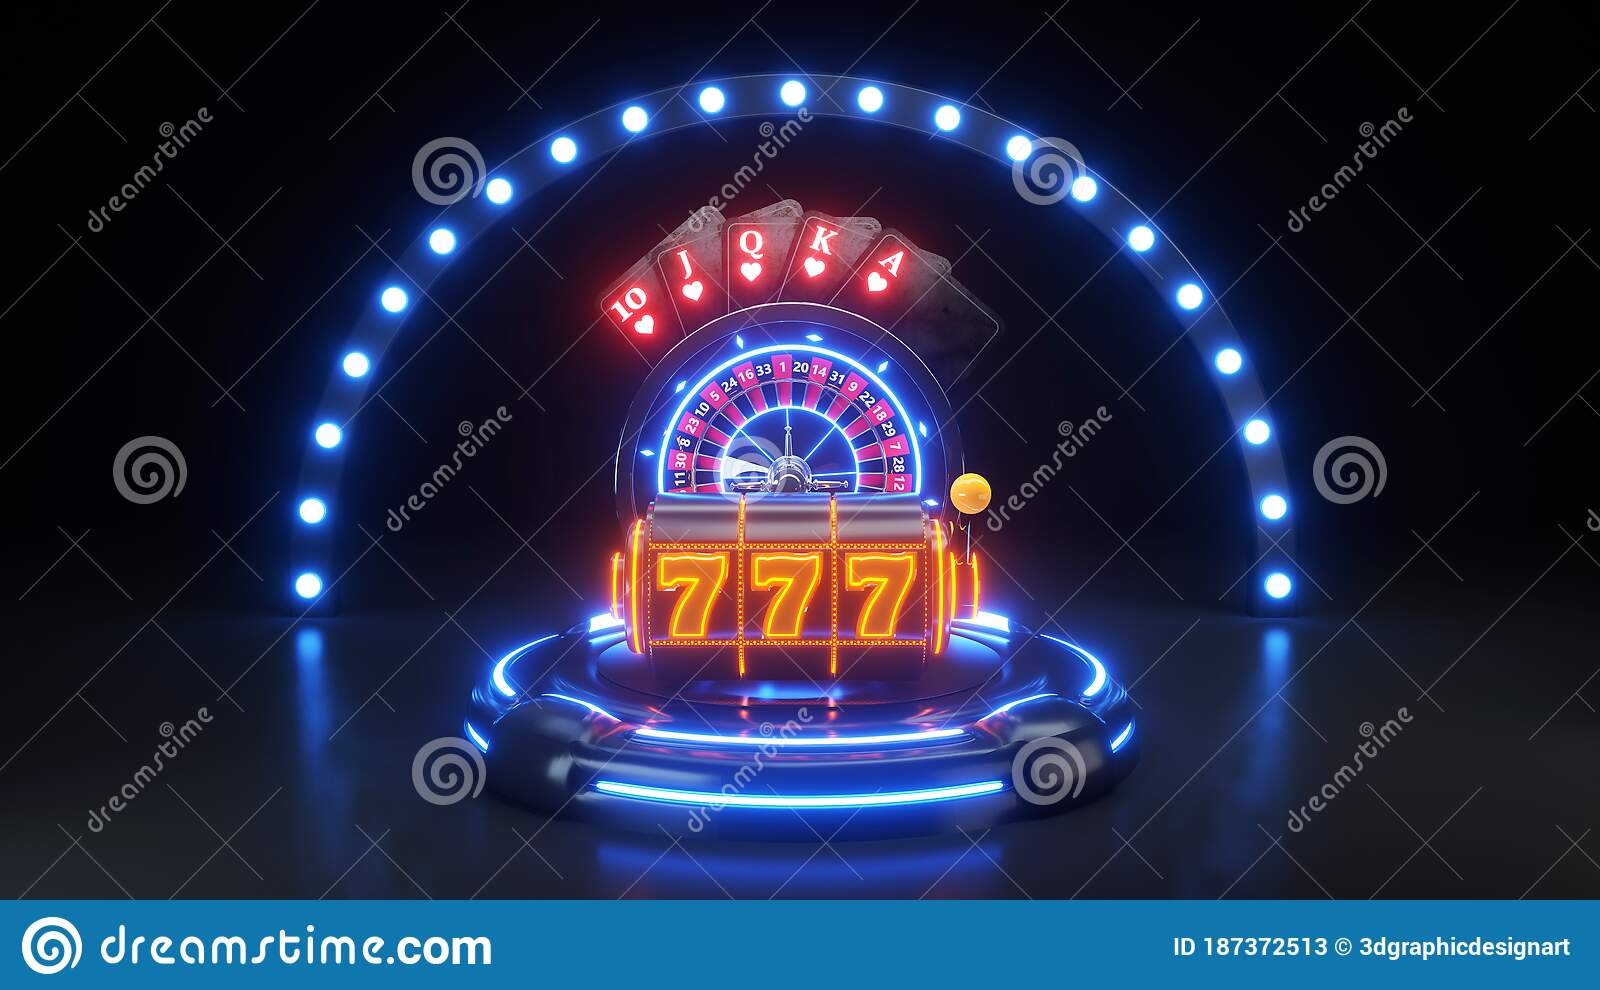 Online Casino Gambling Concept With Neon Lights - 3D Illustration Stock  Illustration - Illustration of concept, poker: 187372513